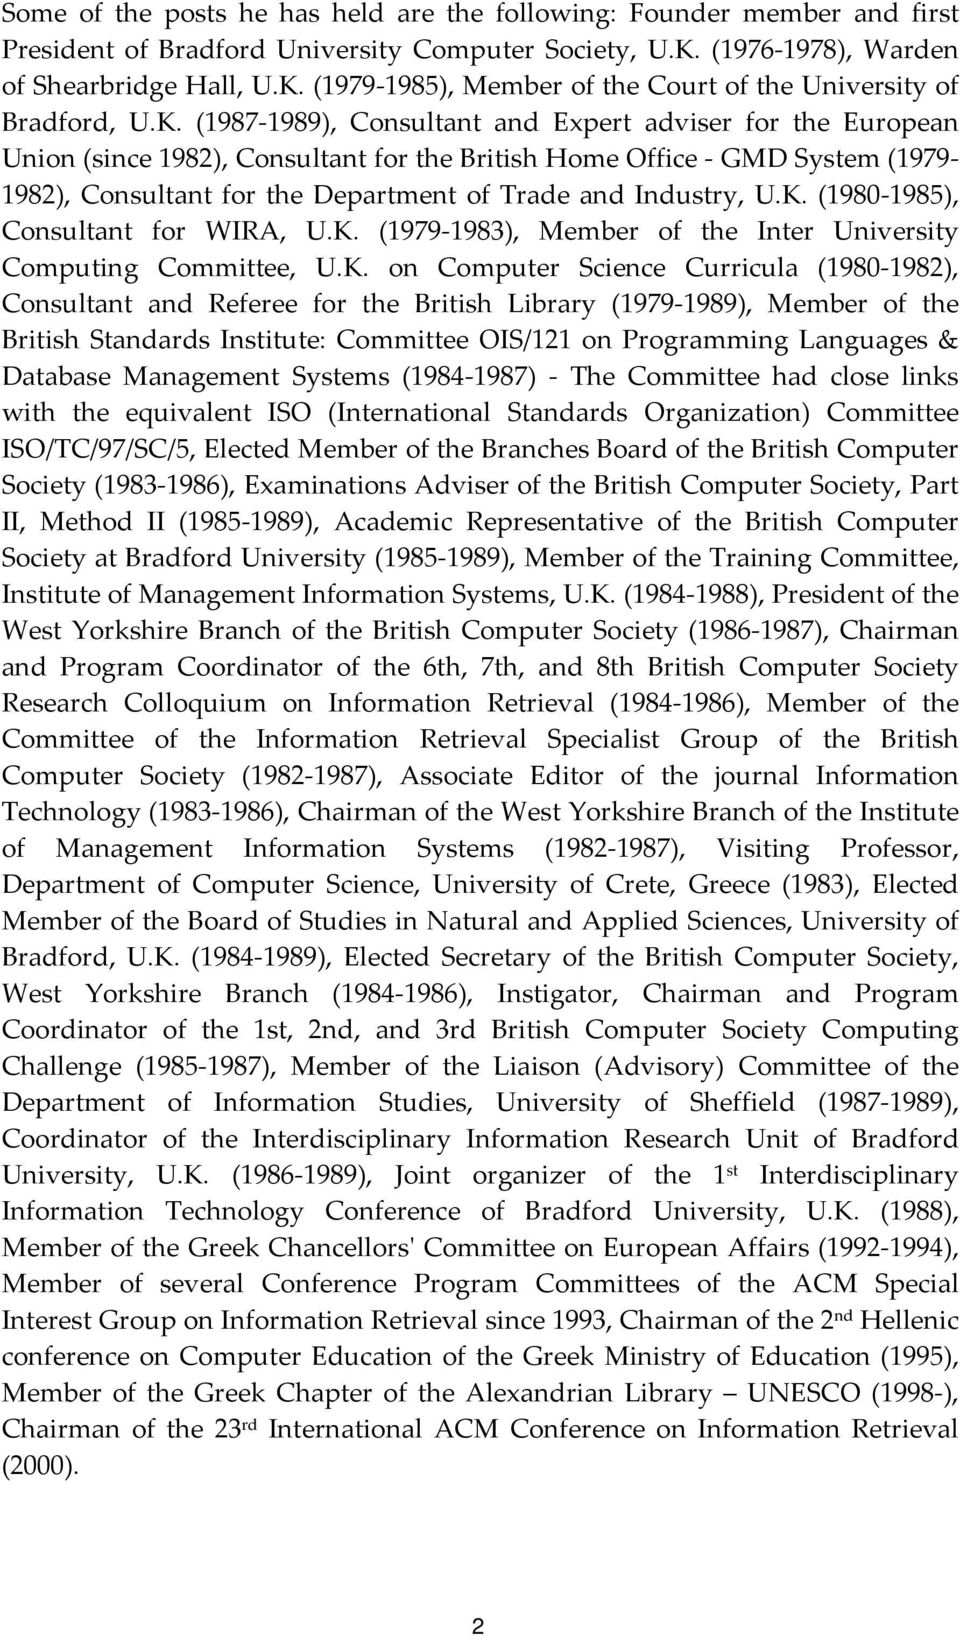 U.K. (1980 1985), Consultant for WIRA, U.K. (1979 1983), Member of the Inter University Computing Committee, U.K. on Computer Science Curricula (1980 1982), Consultant and Referee for the British